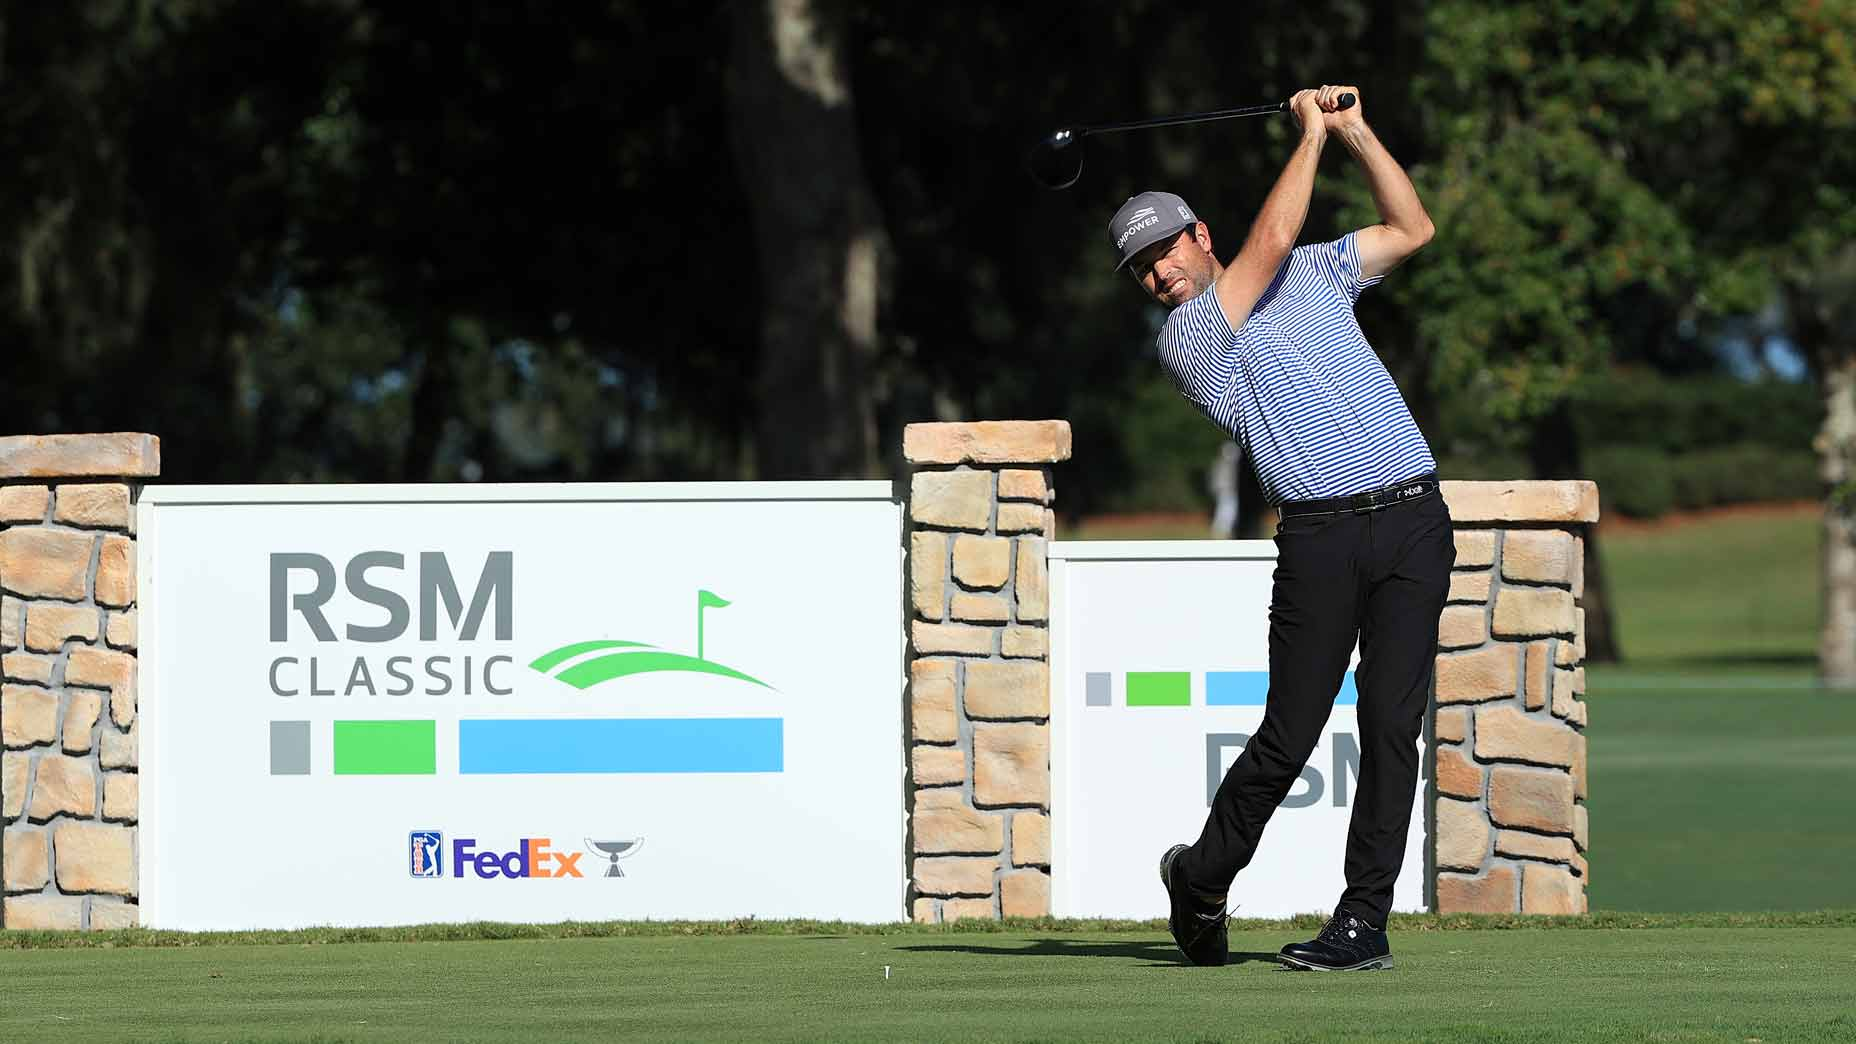 Robert Streb Fades, Recovers Then Wins RSM Classic